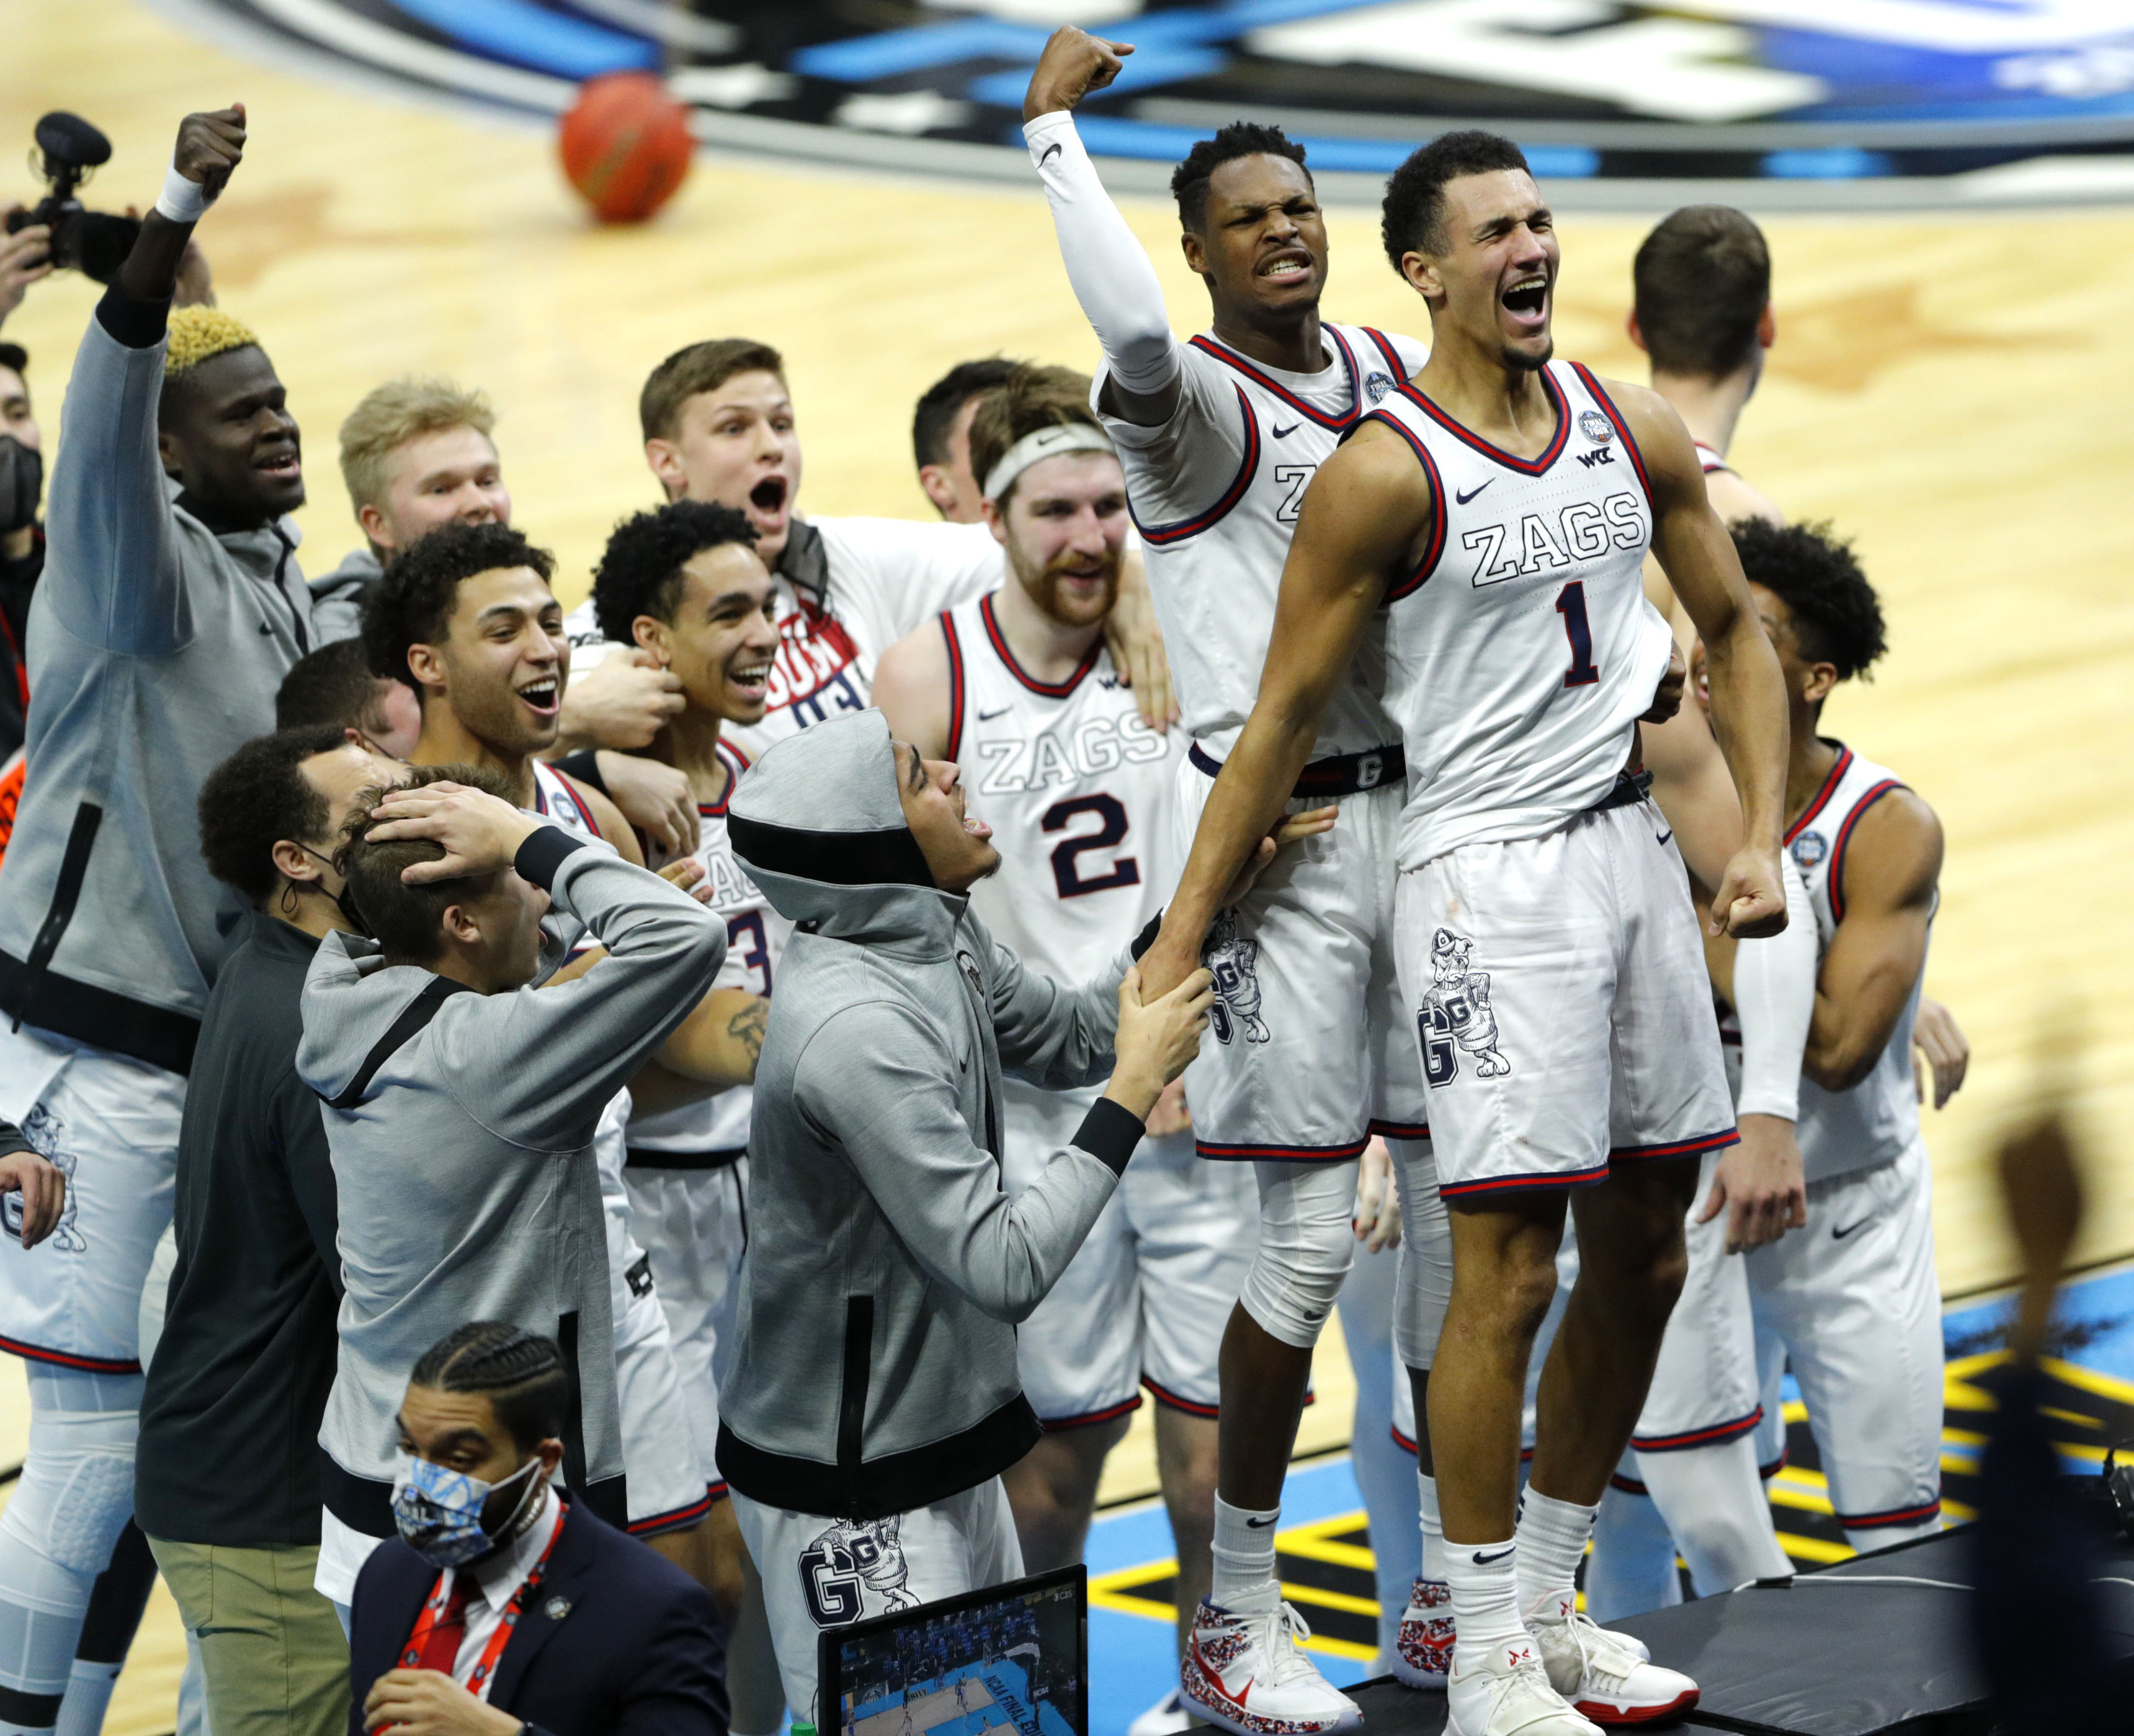 Gonzaga Bulldogs guard Jalen Suggs (1) leaps on a sideline table to celebrate after sinking a buzzer beater three-pointer to defeat UCLA in overtime during the semifinals of the Final Four of the 2021 NCAA Tournament on Saturday, April 3, 2021, at Lucas Oil Stadium in Indianapolis, Ind.